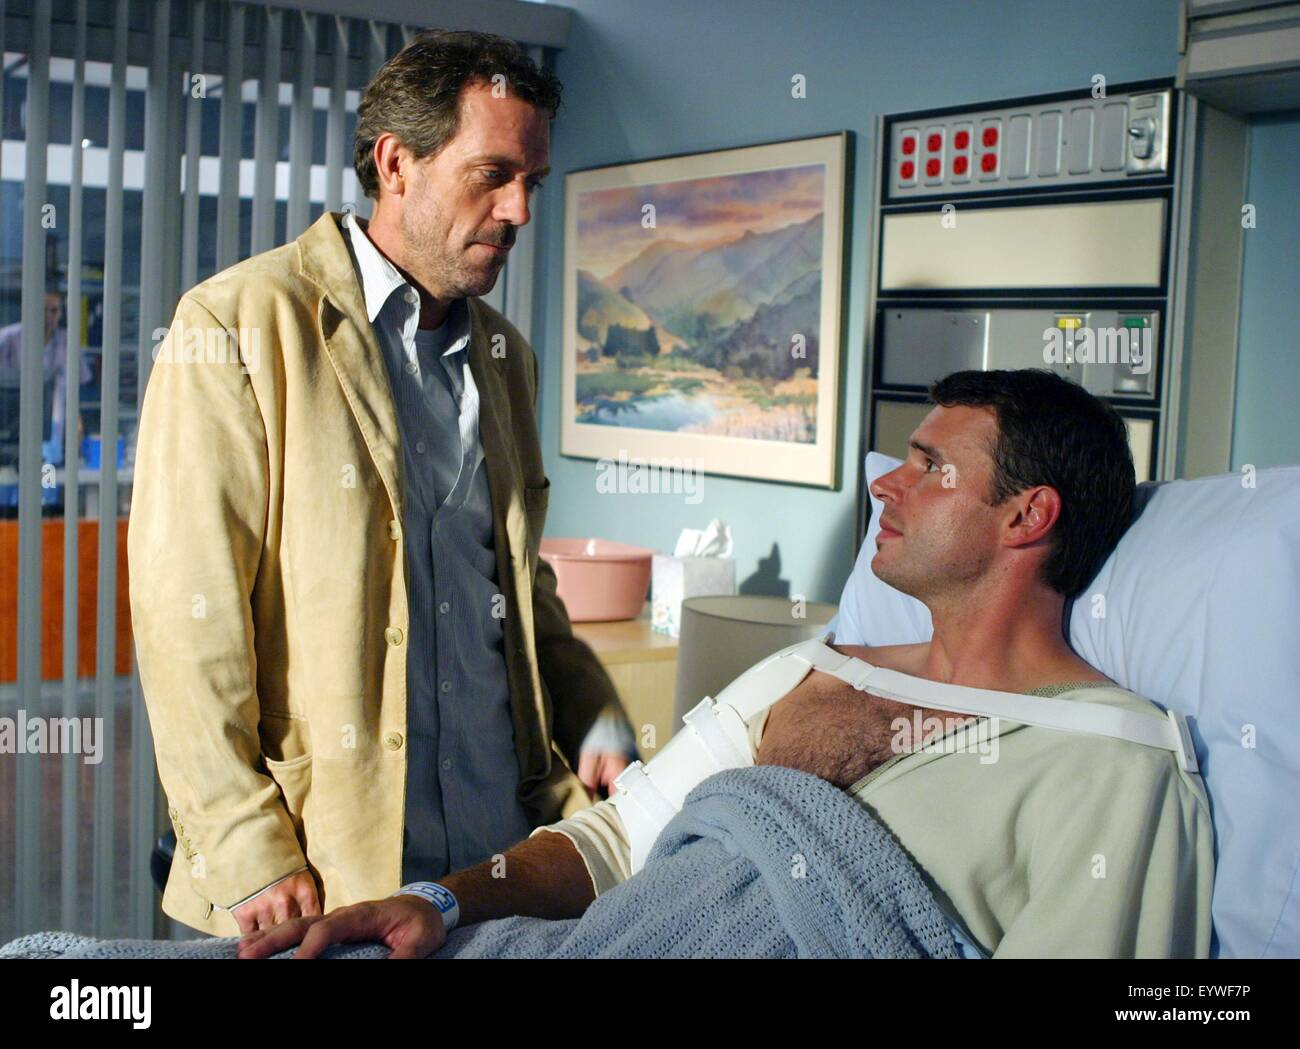 House Md Tv Series 2004 Usa 2005 Seaon 1 Episode 12